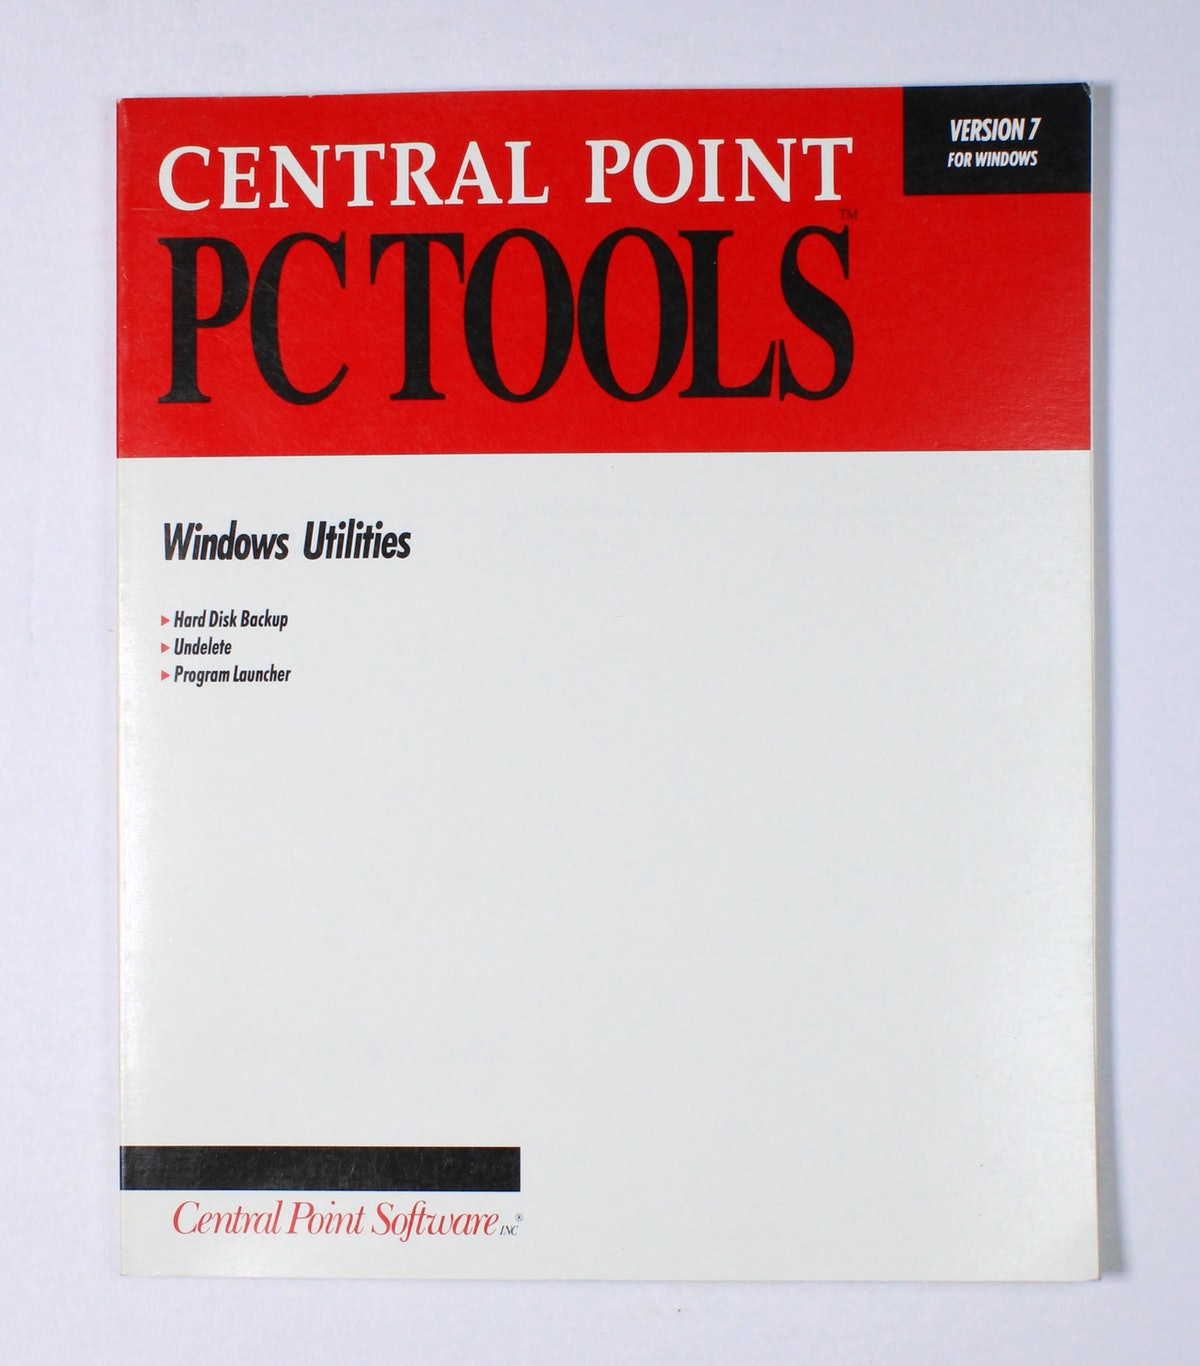 Central Point PC Tools: Windows Utilities